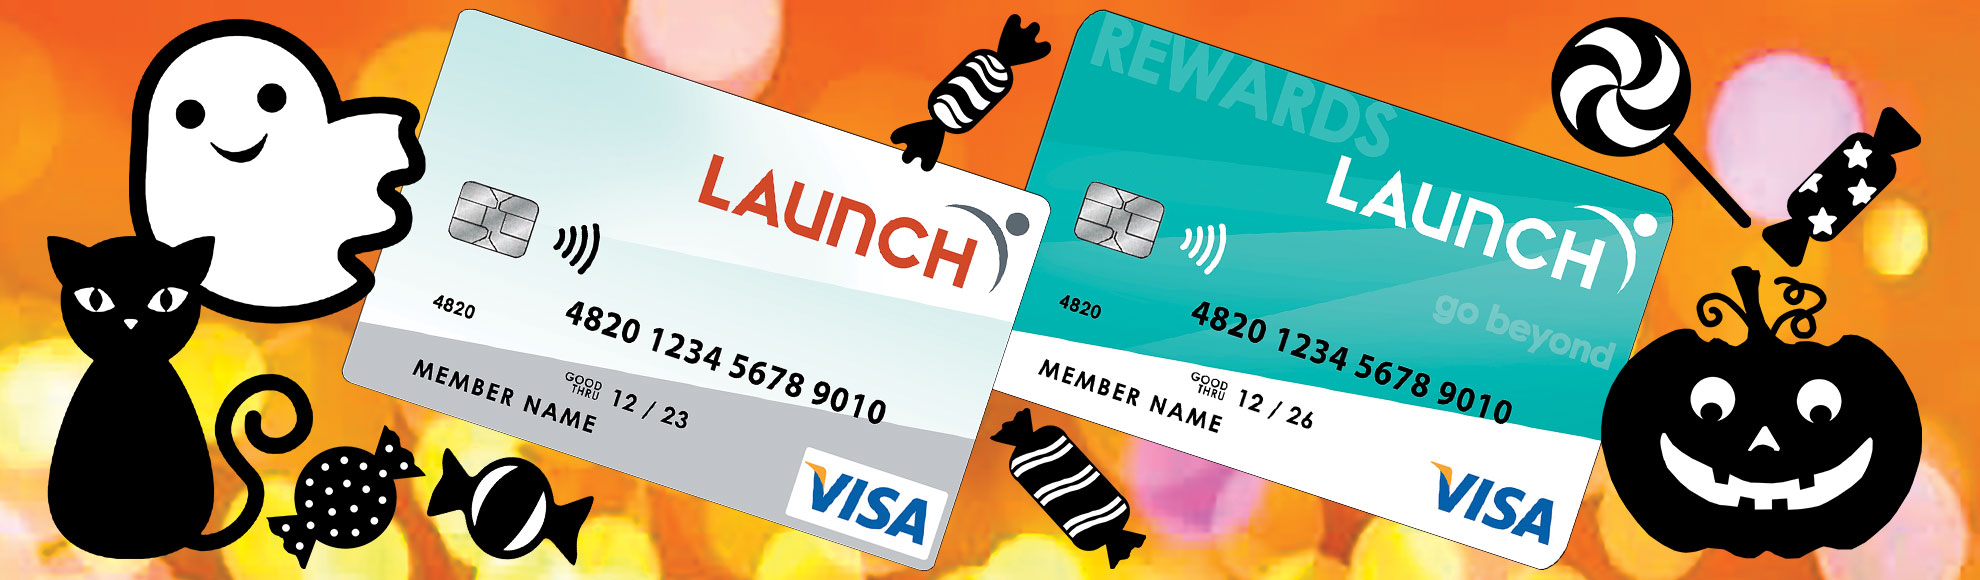 Halloween theme with 2 Launch CU Credit Cards